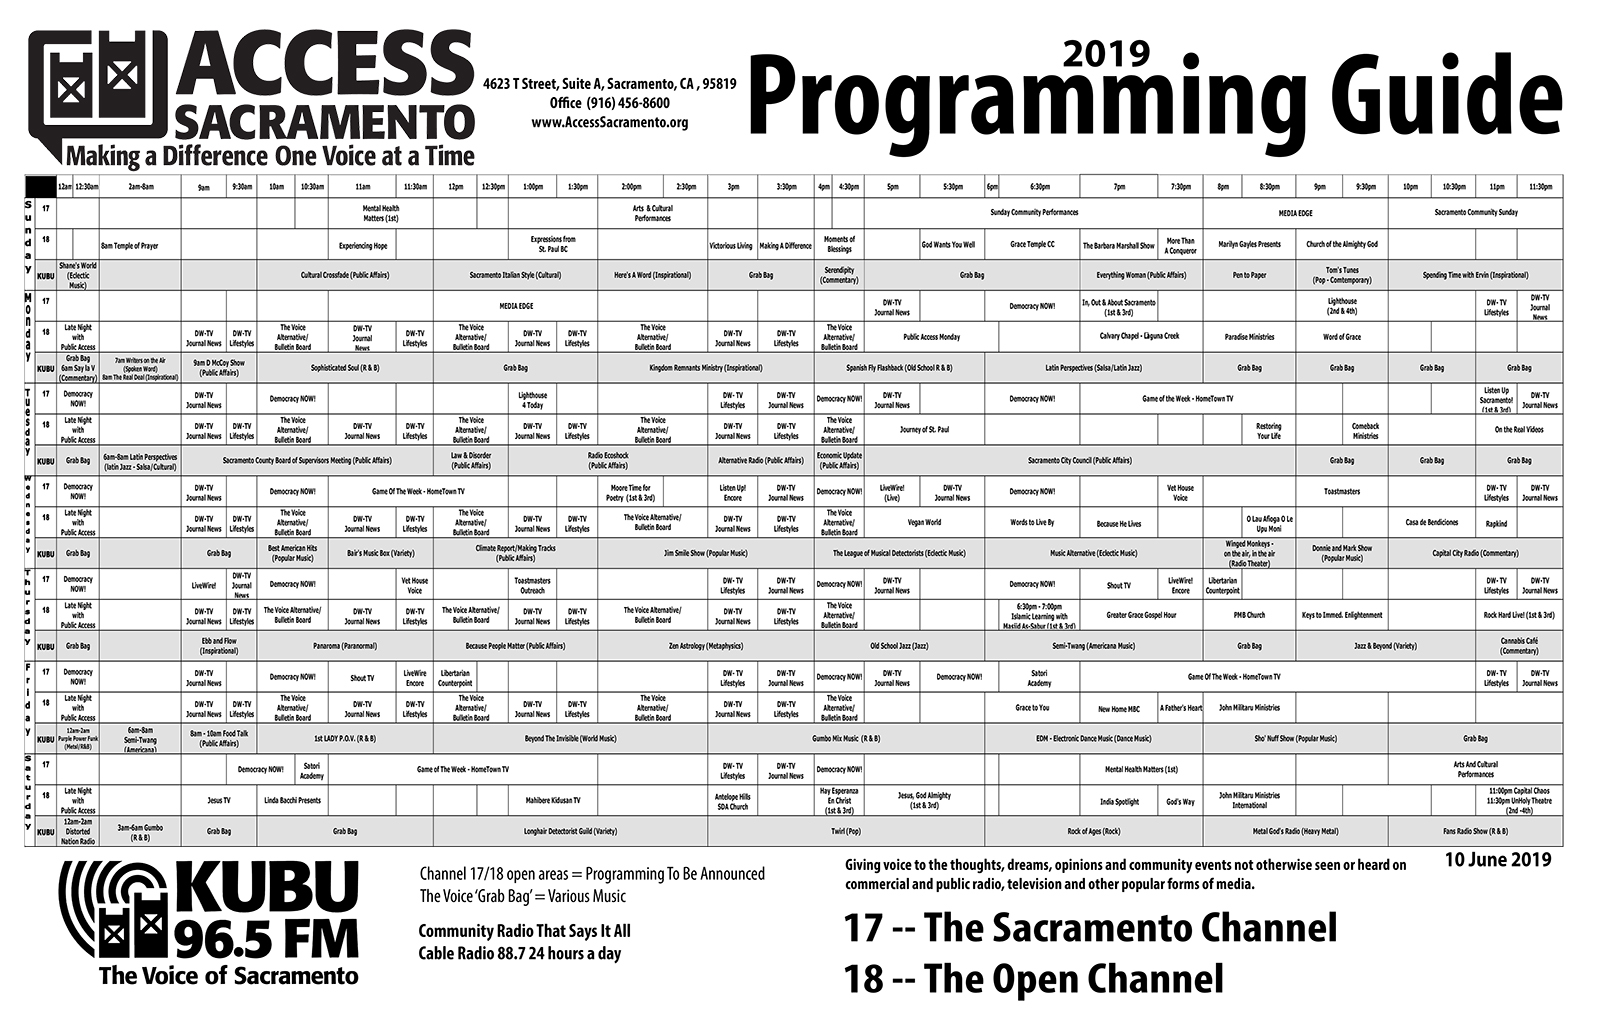 Program Schedule (B/W Print Version)